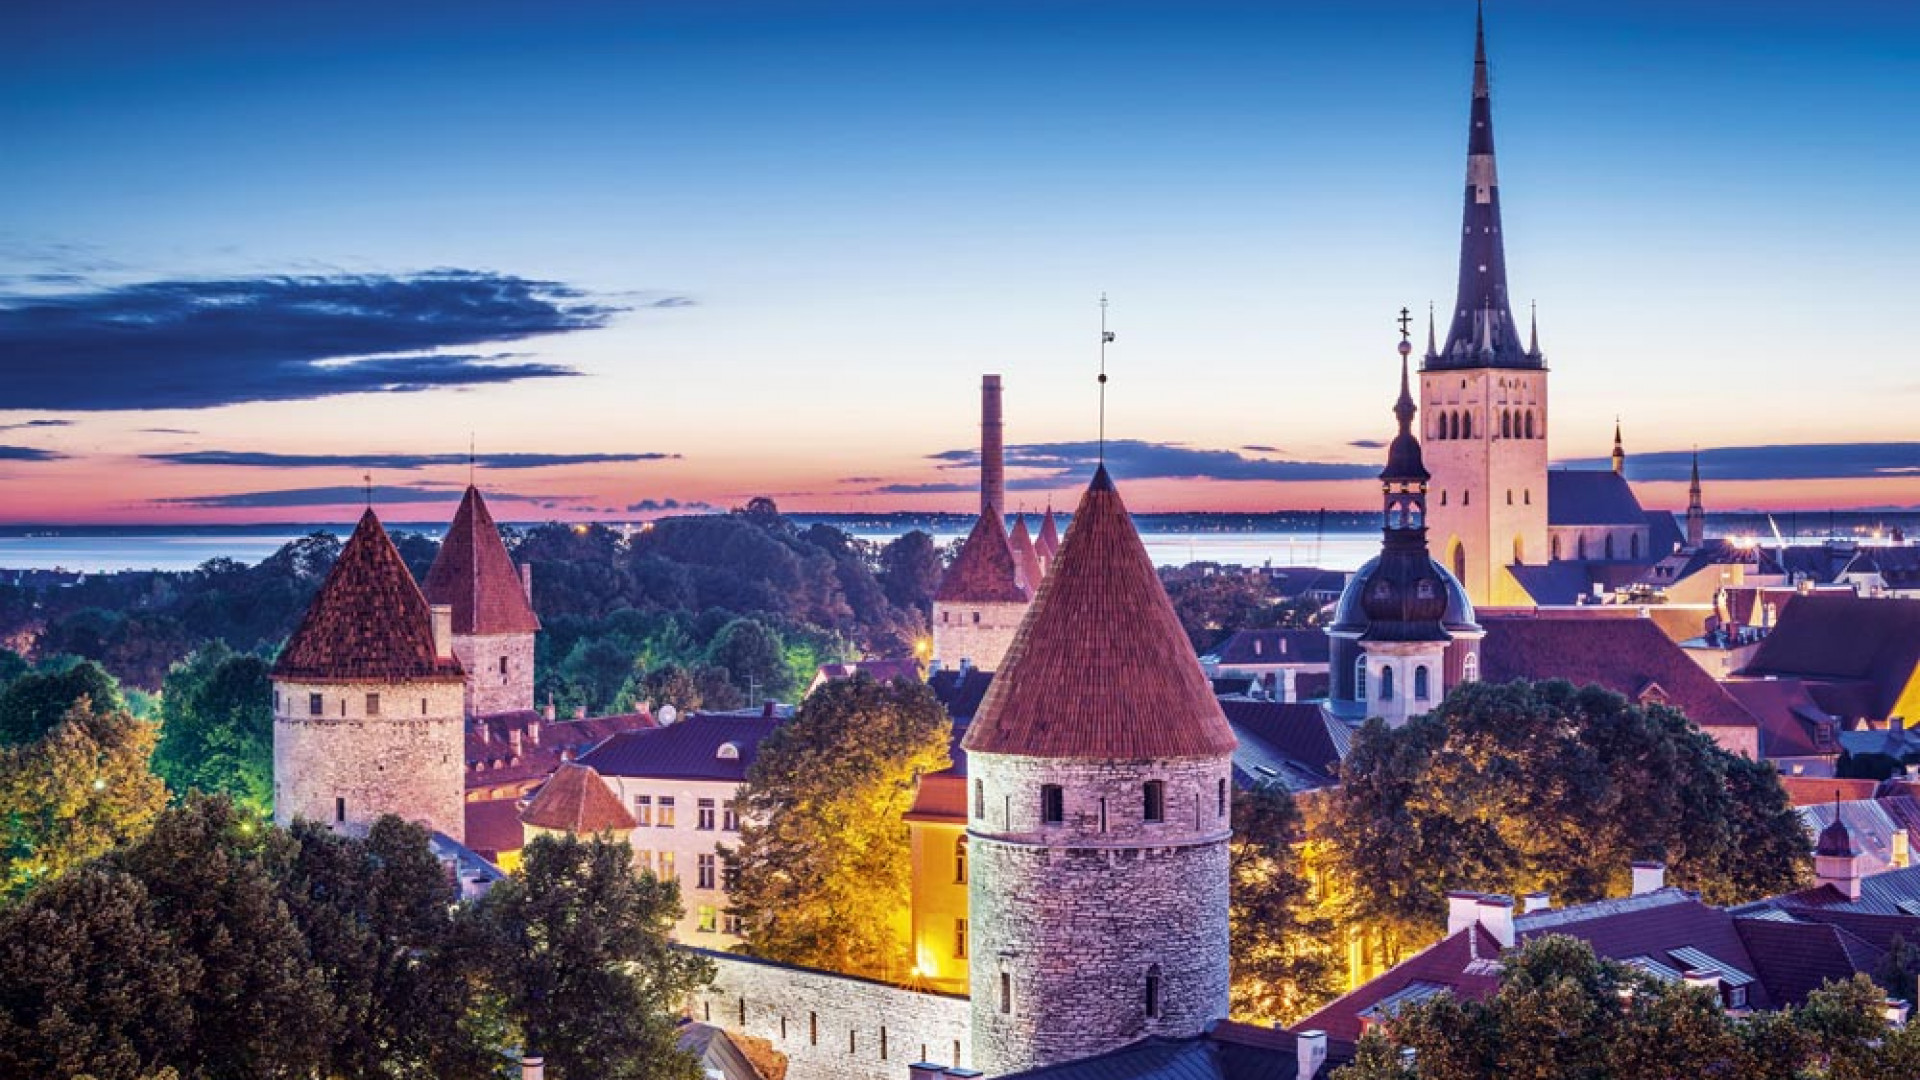 Tallin skyline, Estonia